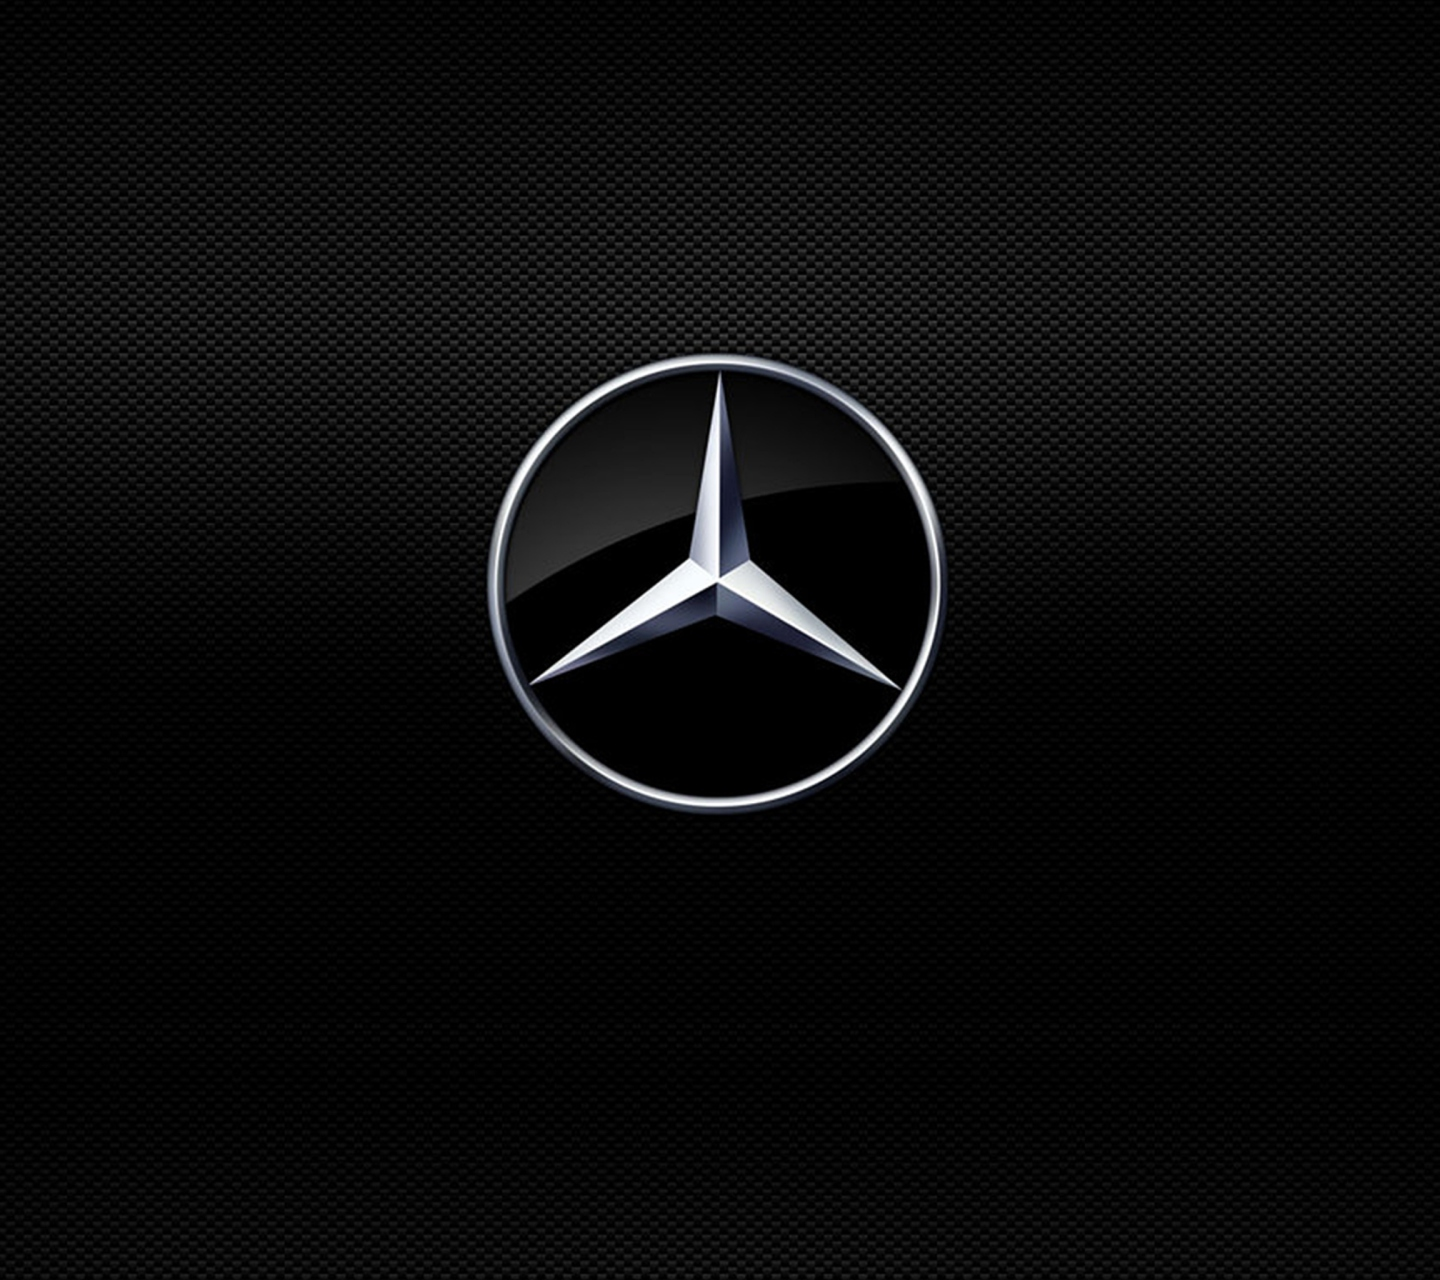 Mercedes Logo Wallpaper for Android 720x1280 1440x1280